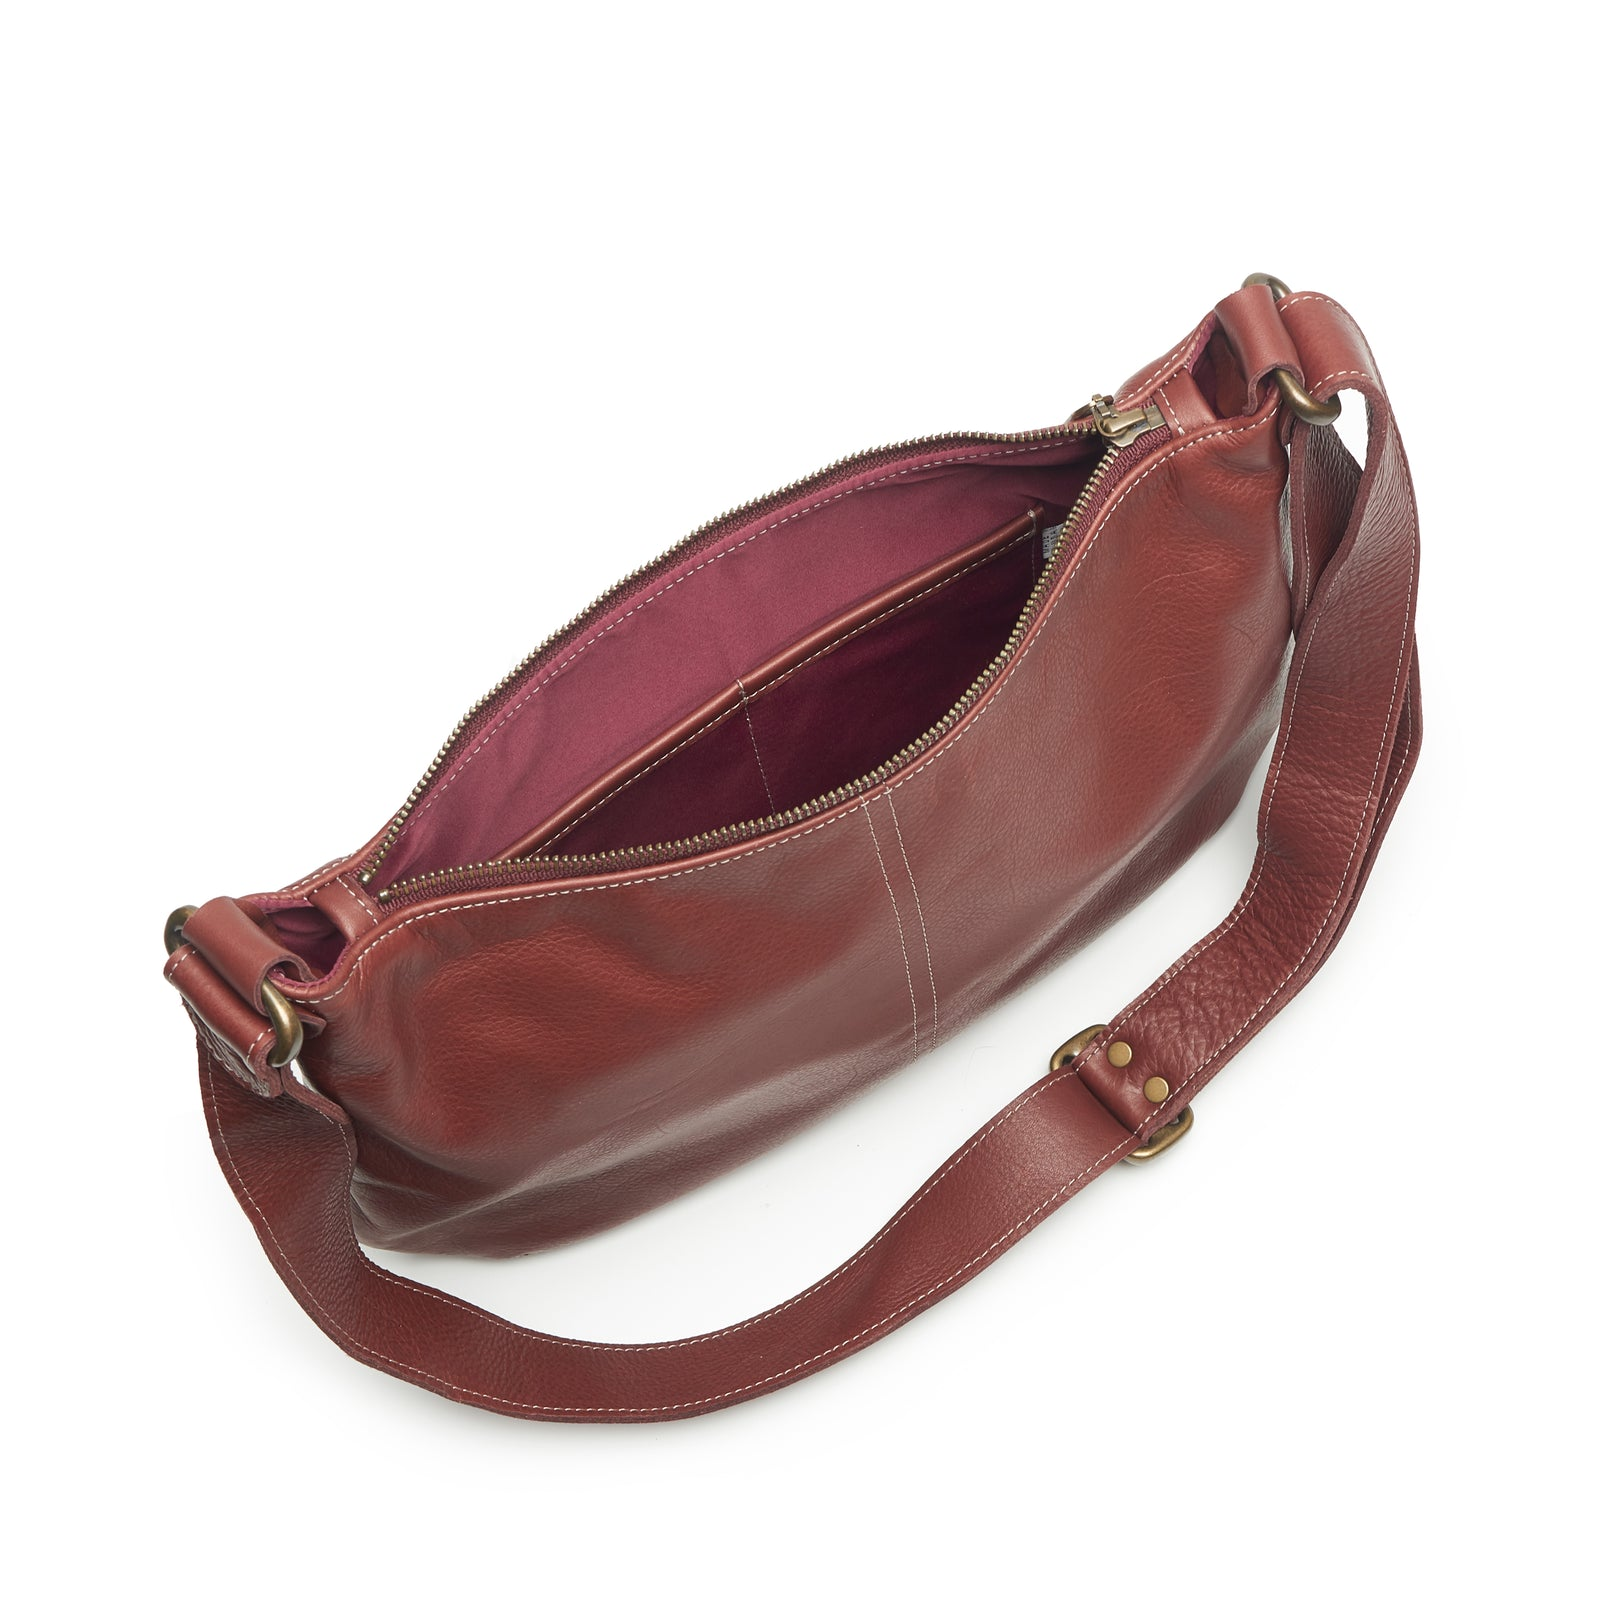 Mini Pamela Crossbody Hobo - Merlot - Brynn Capella, Hobo